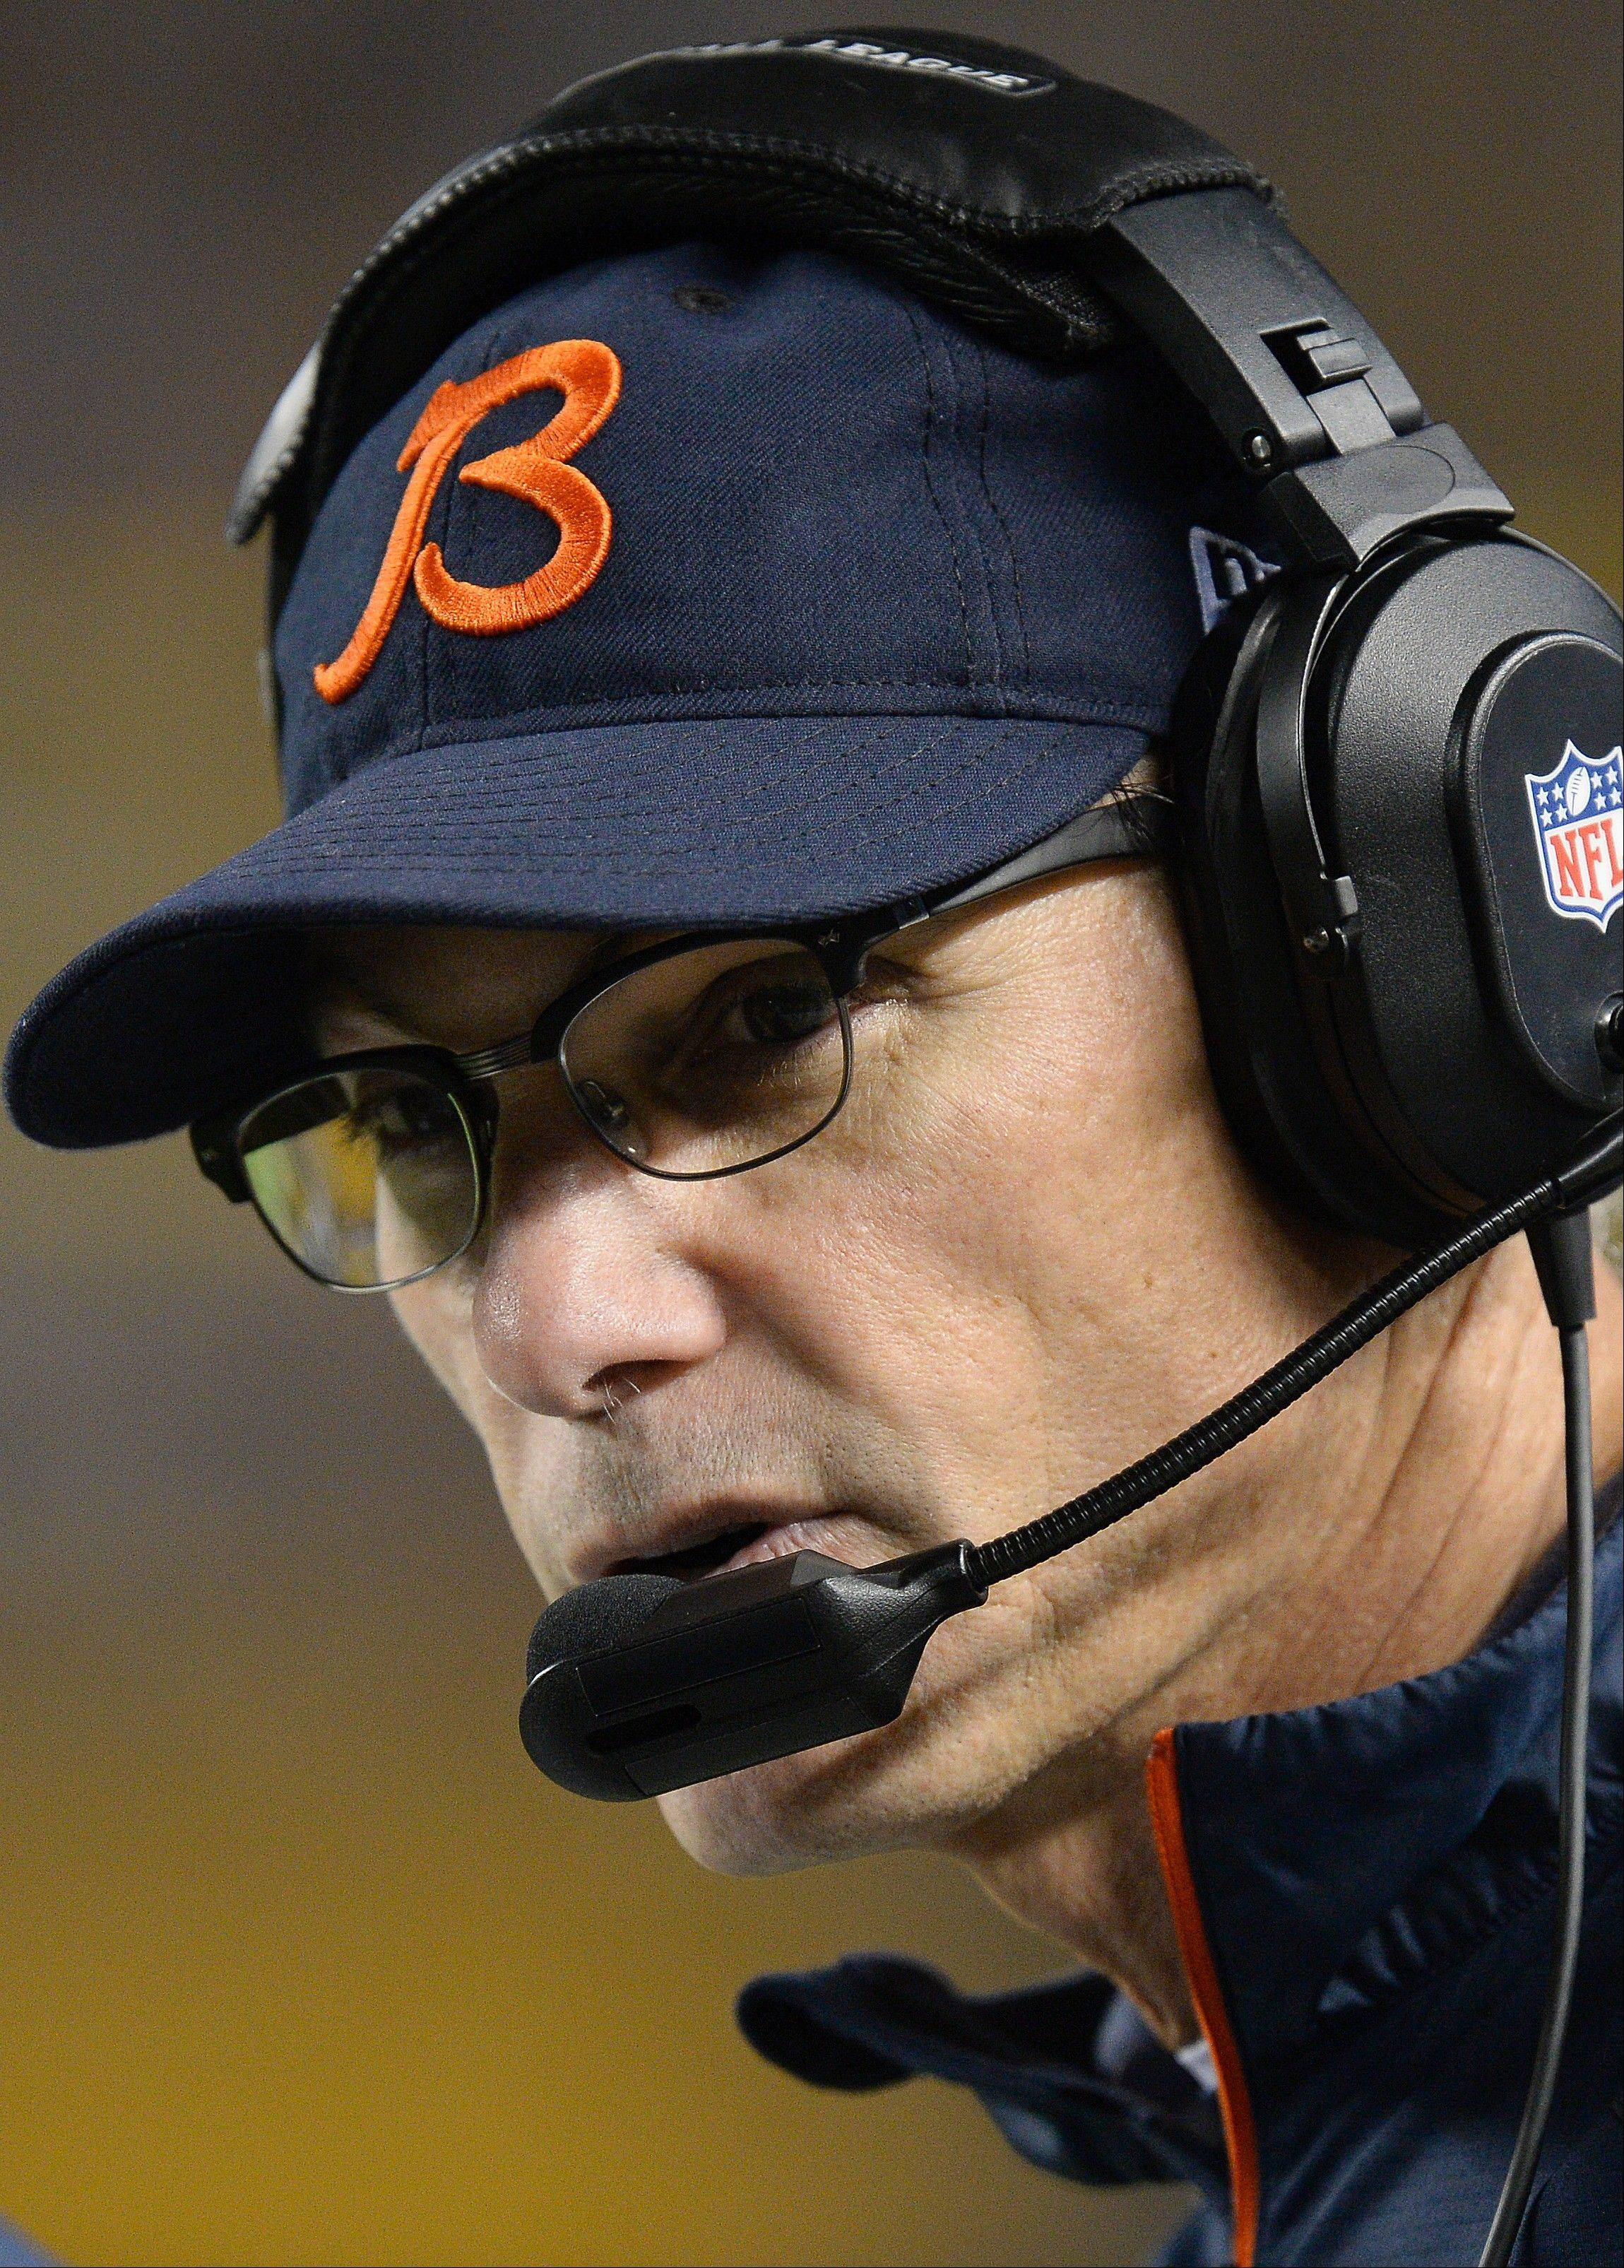 Chicago Bears head coach Marc Trestman on the sideline during the first quarter of an NFL football game against the Pittsburgh Steelers on Sunday, Sept. 22, 2013, in Pittsburgh. The Bears won 40-23.